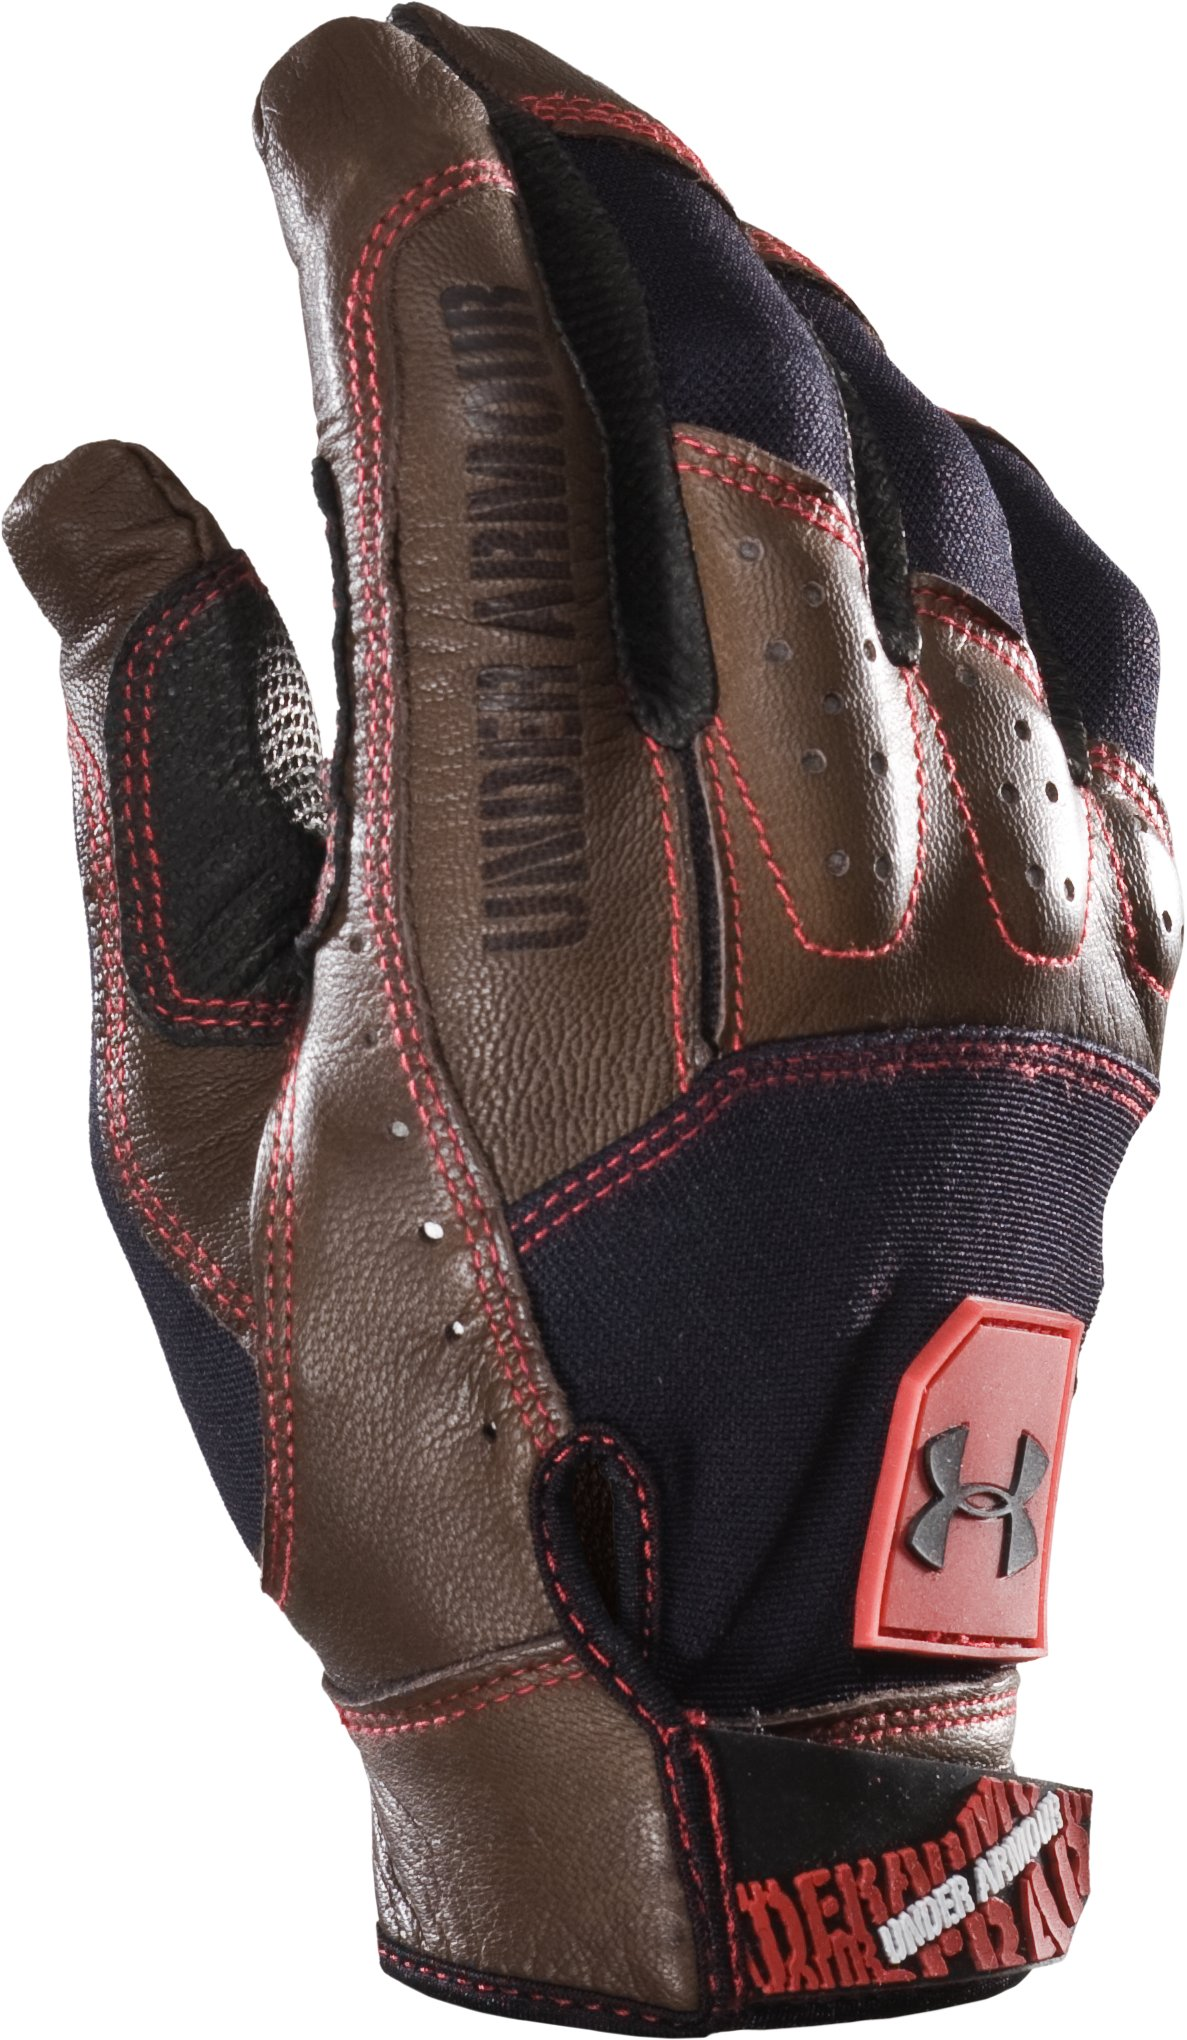 Leather Impact Gloves, Hearthstone